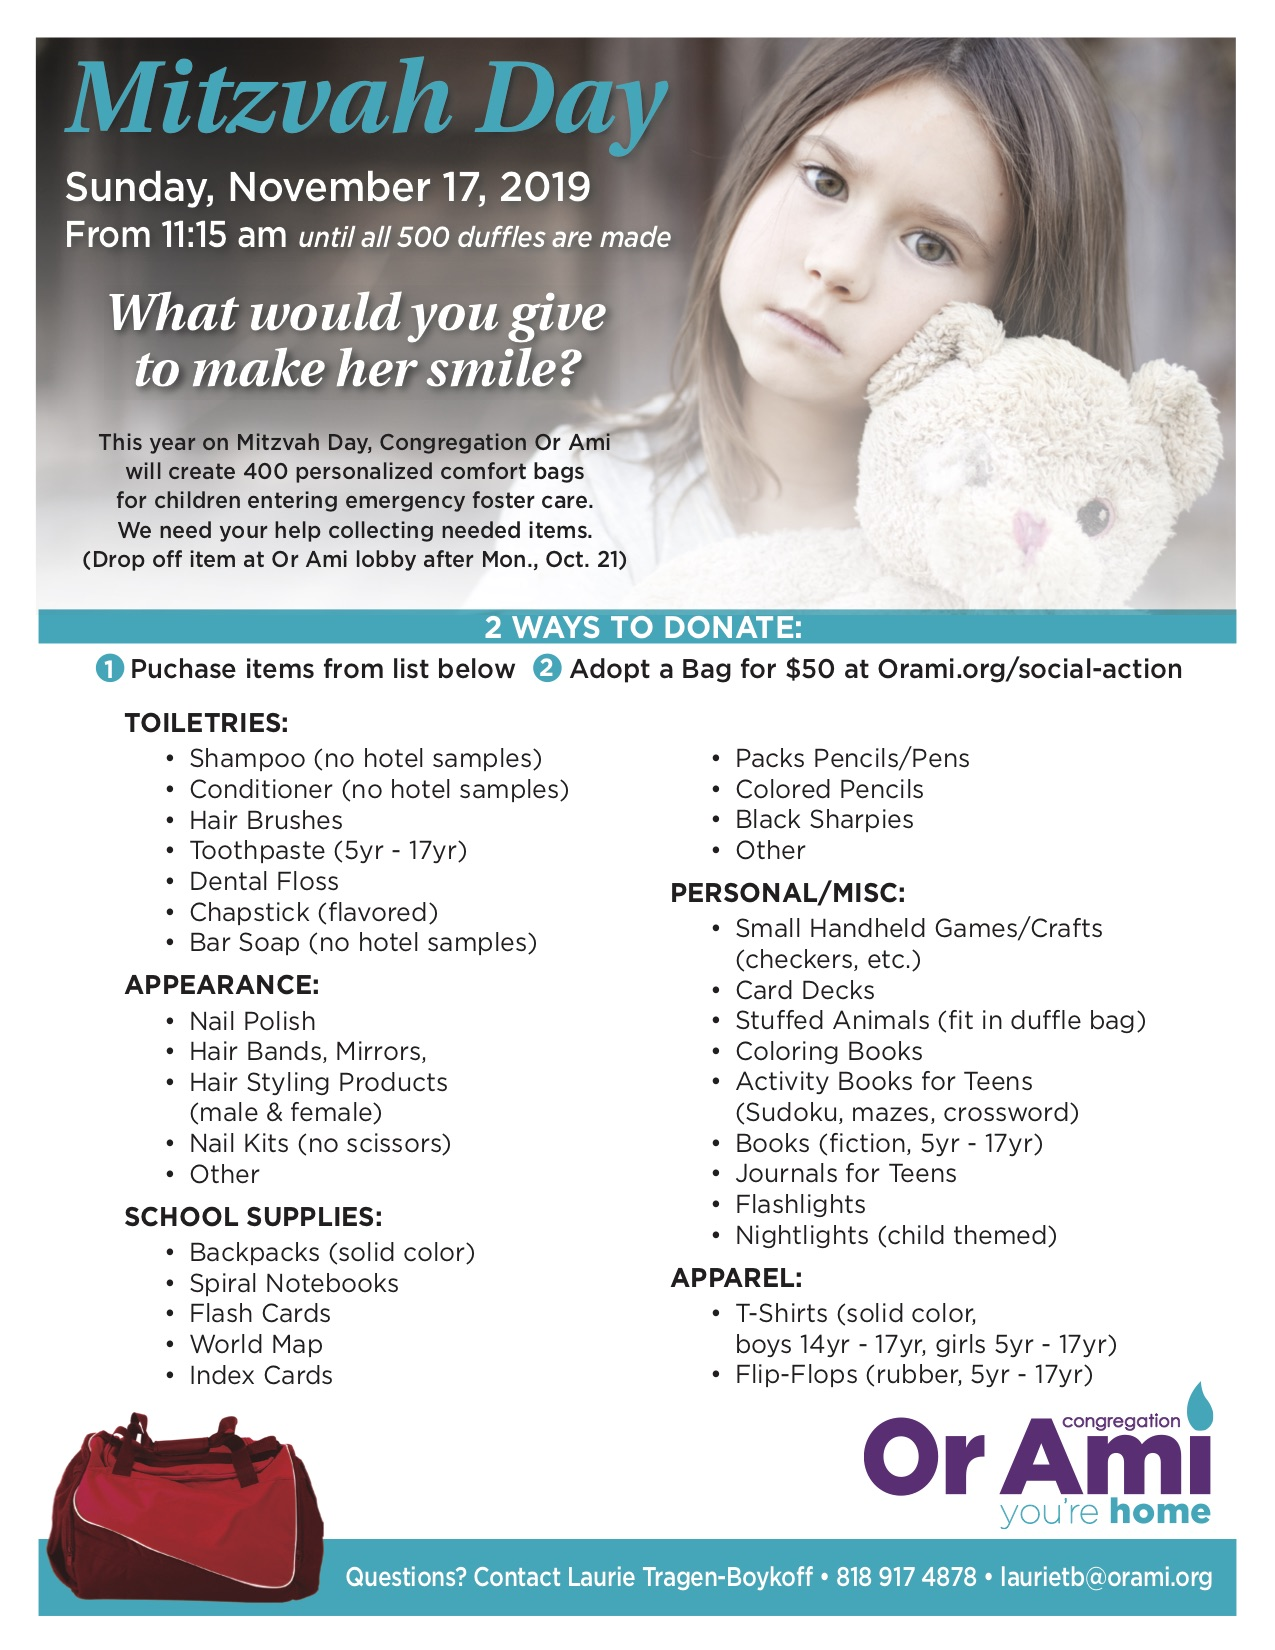 Or Ami Mitzvah Day Flyer 2019 (2) (2)